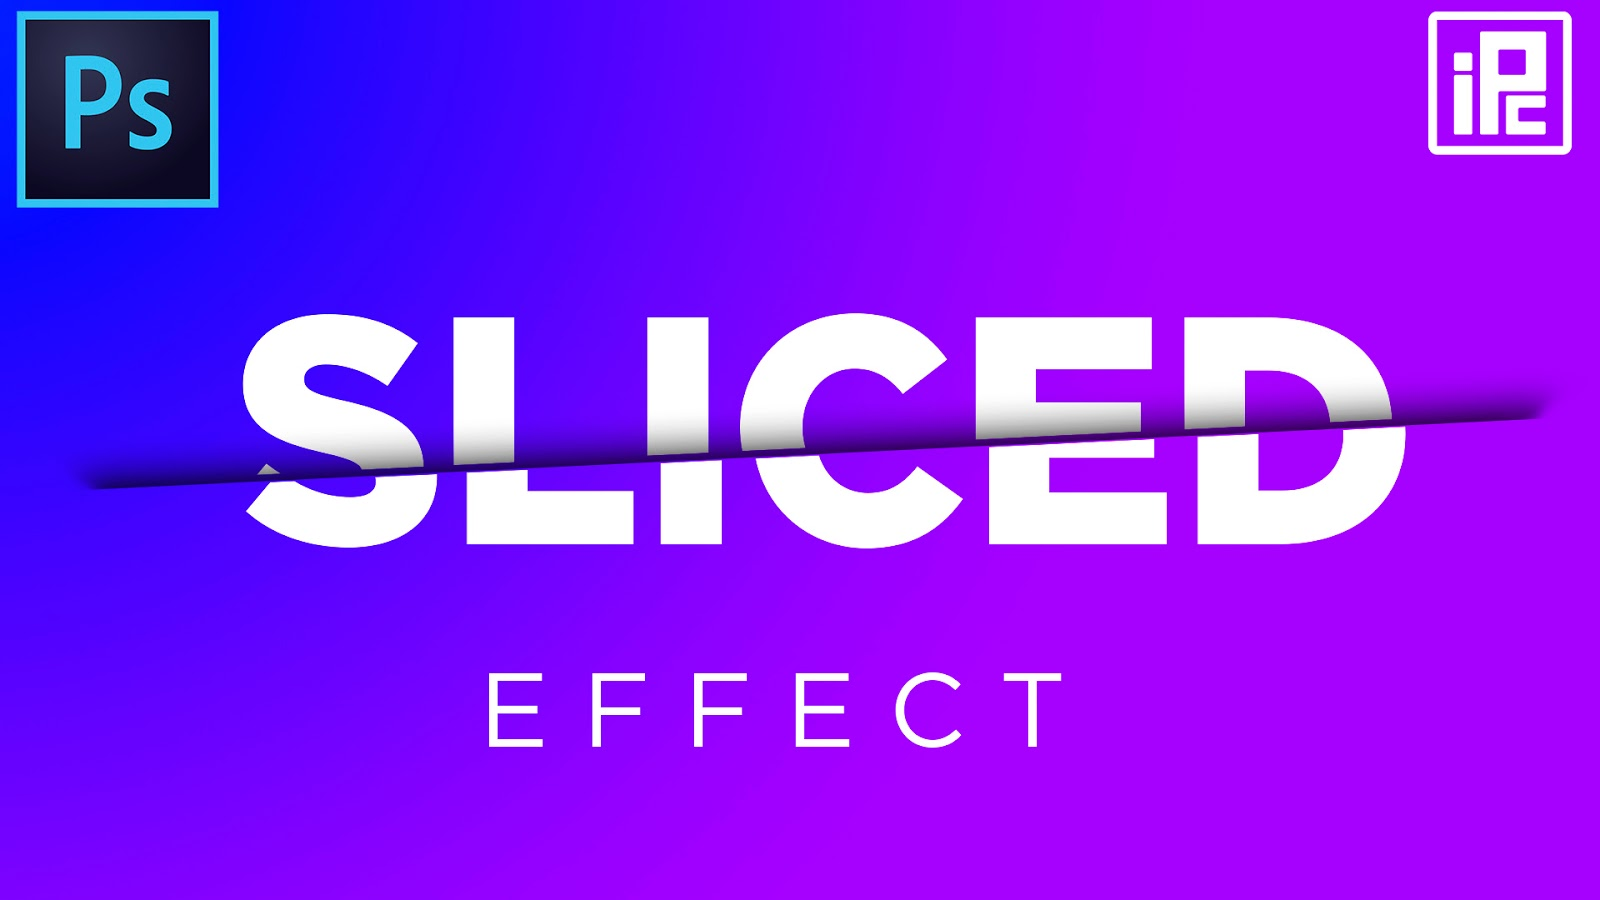 how to create sliced text effect in photoshop, create sliced text effect in photoshop, text effect, photoshop text effect, photoshop designt, design, image, text, photoshop, photoshop cc, photoshop cc 2019, photoshop tutorial, photoshop cc tutorial, photoshosp cc 2019 tutorial, illphocorphics, illphocorphics tutorial,